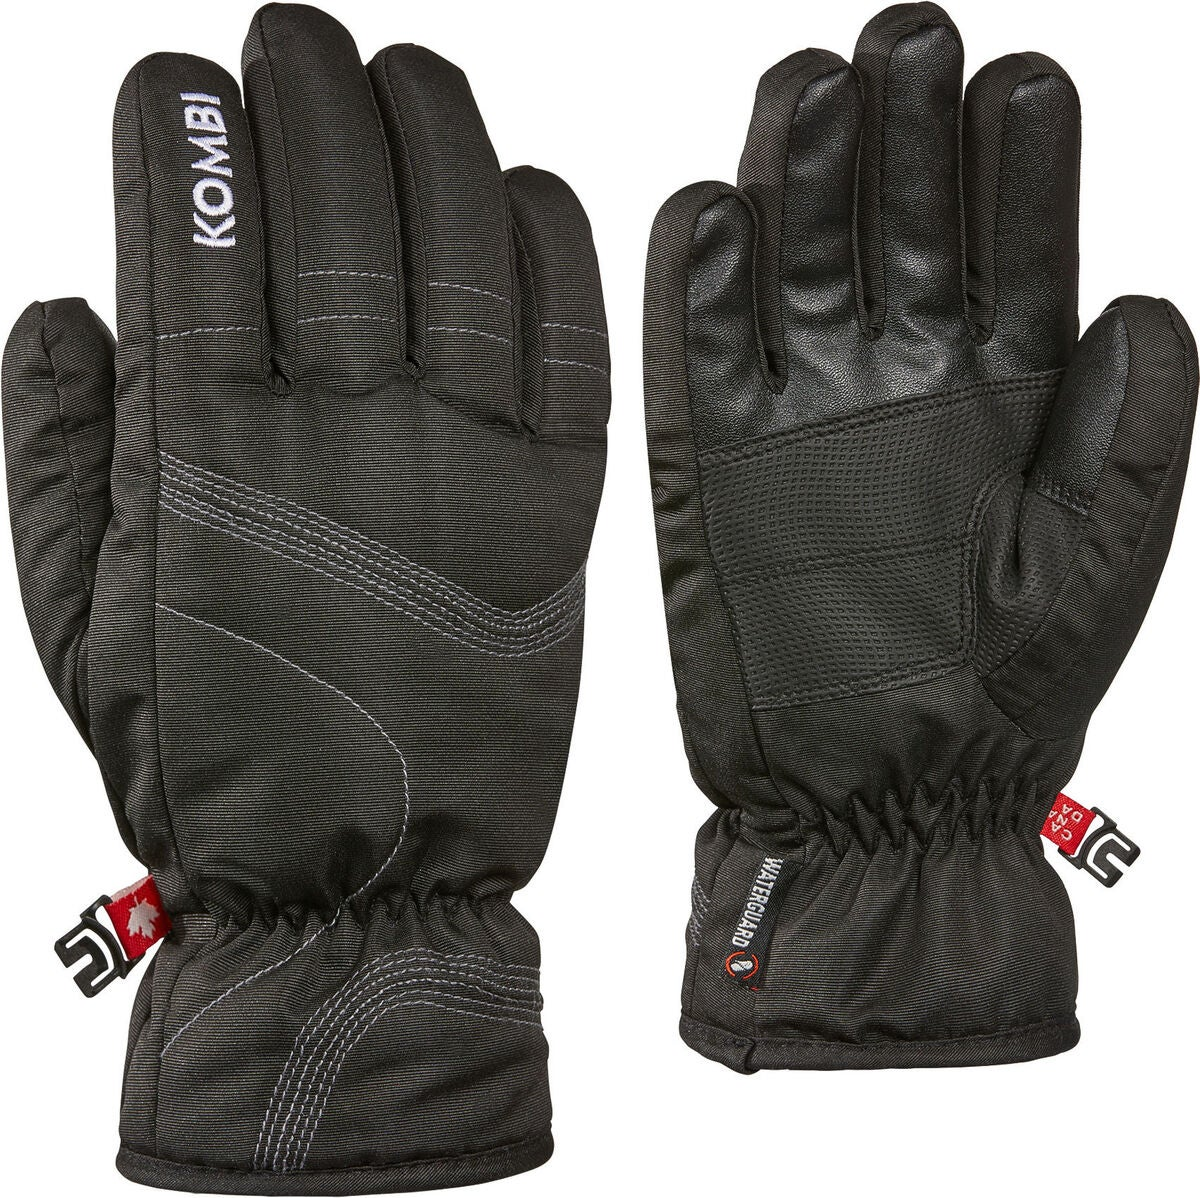 Kombi Fire WG Handschuhe Jr, Black